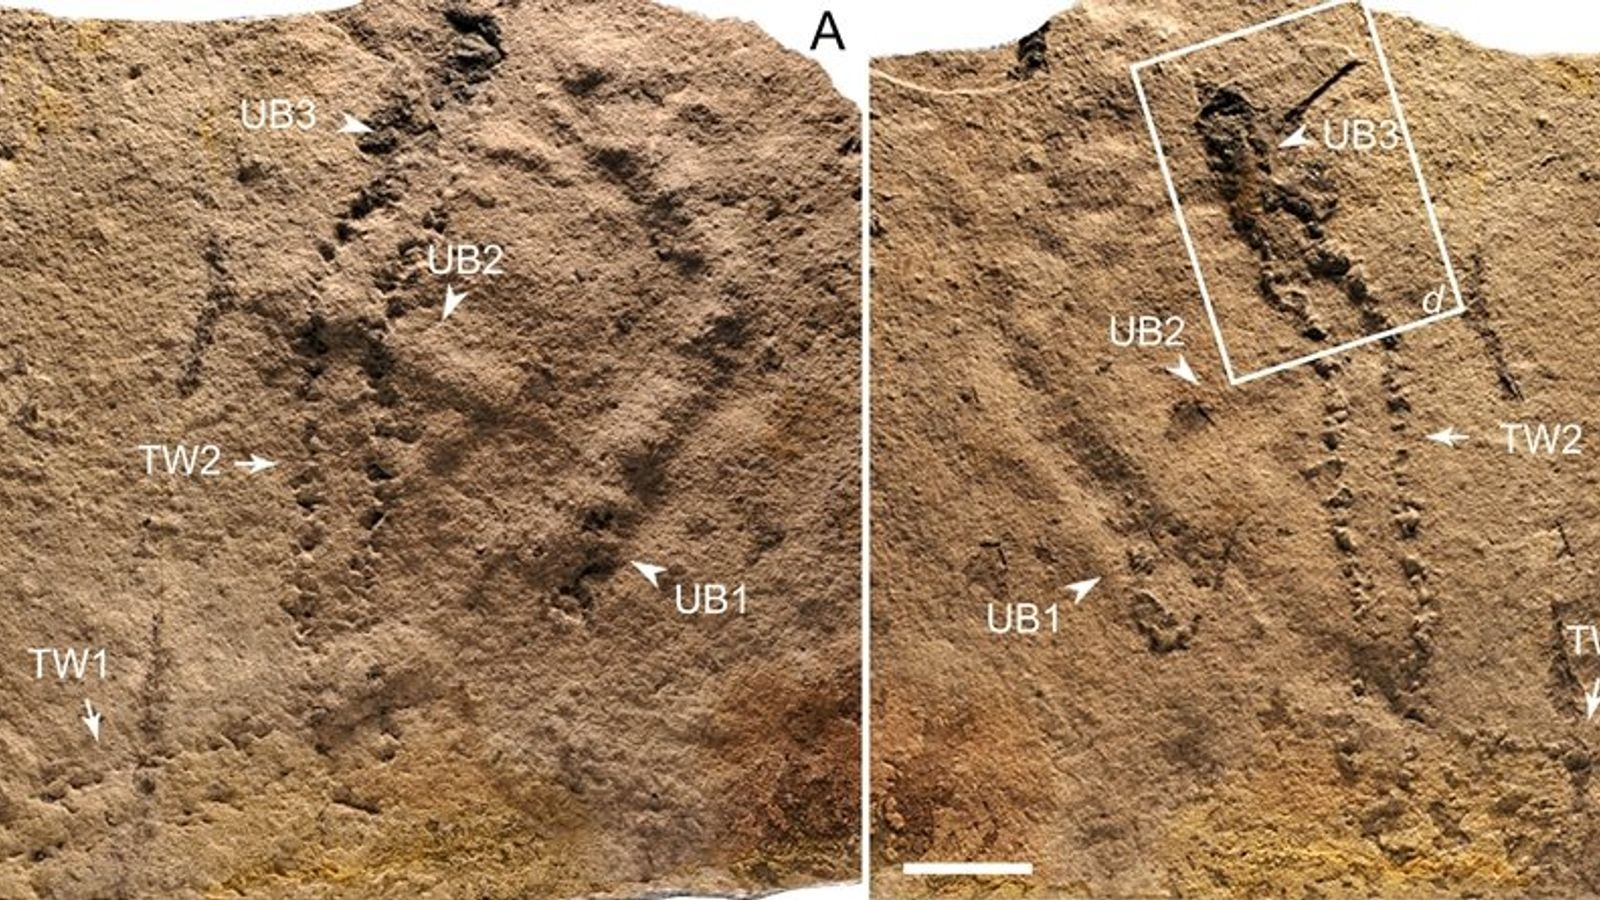 Scientists find 540-million-year-old footprints